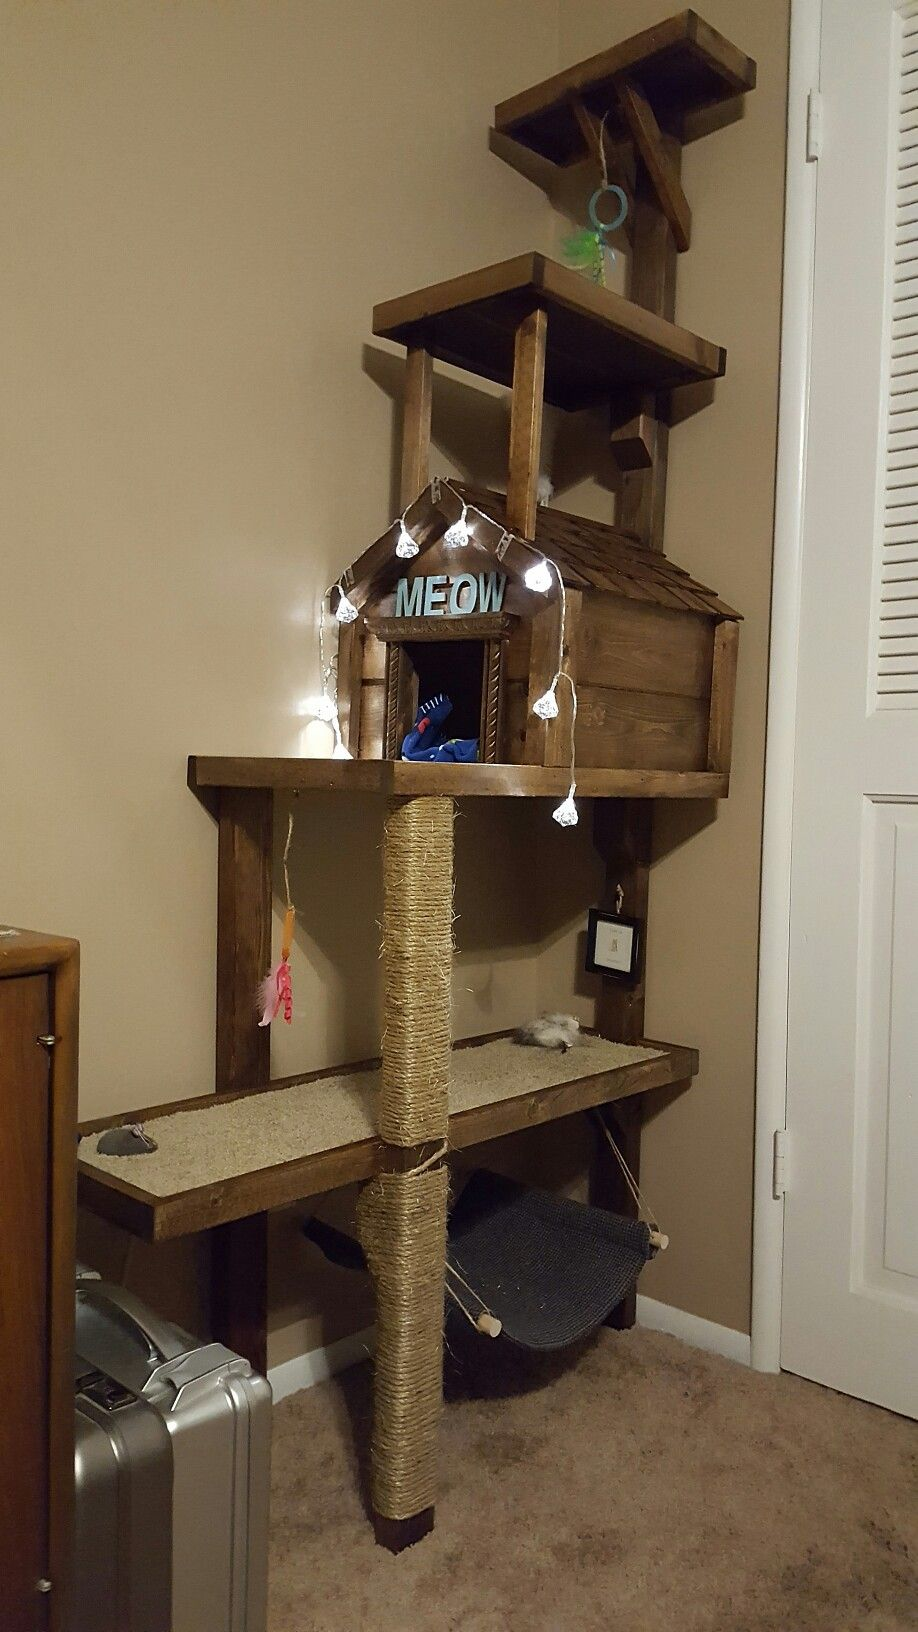 Designer Dog Leash Signature Braided 1 Largest Online Dog Boutique Cat Trees Homemade Diy Cat Tree Cool Cat Trees